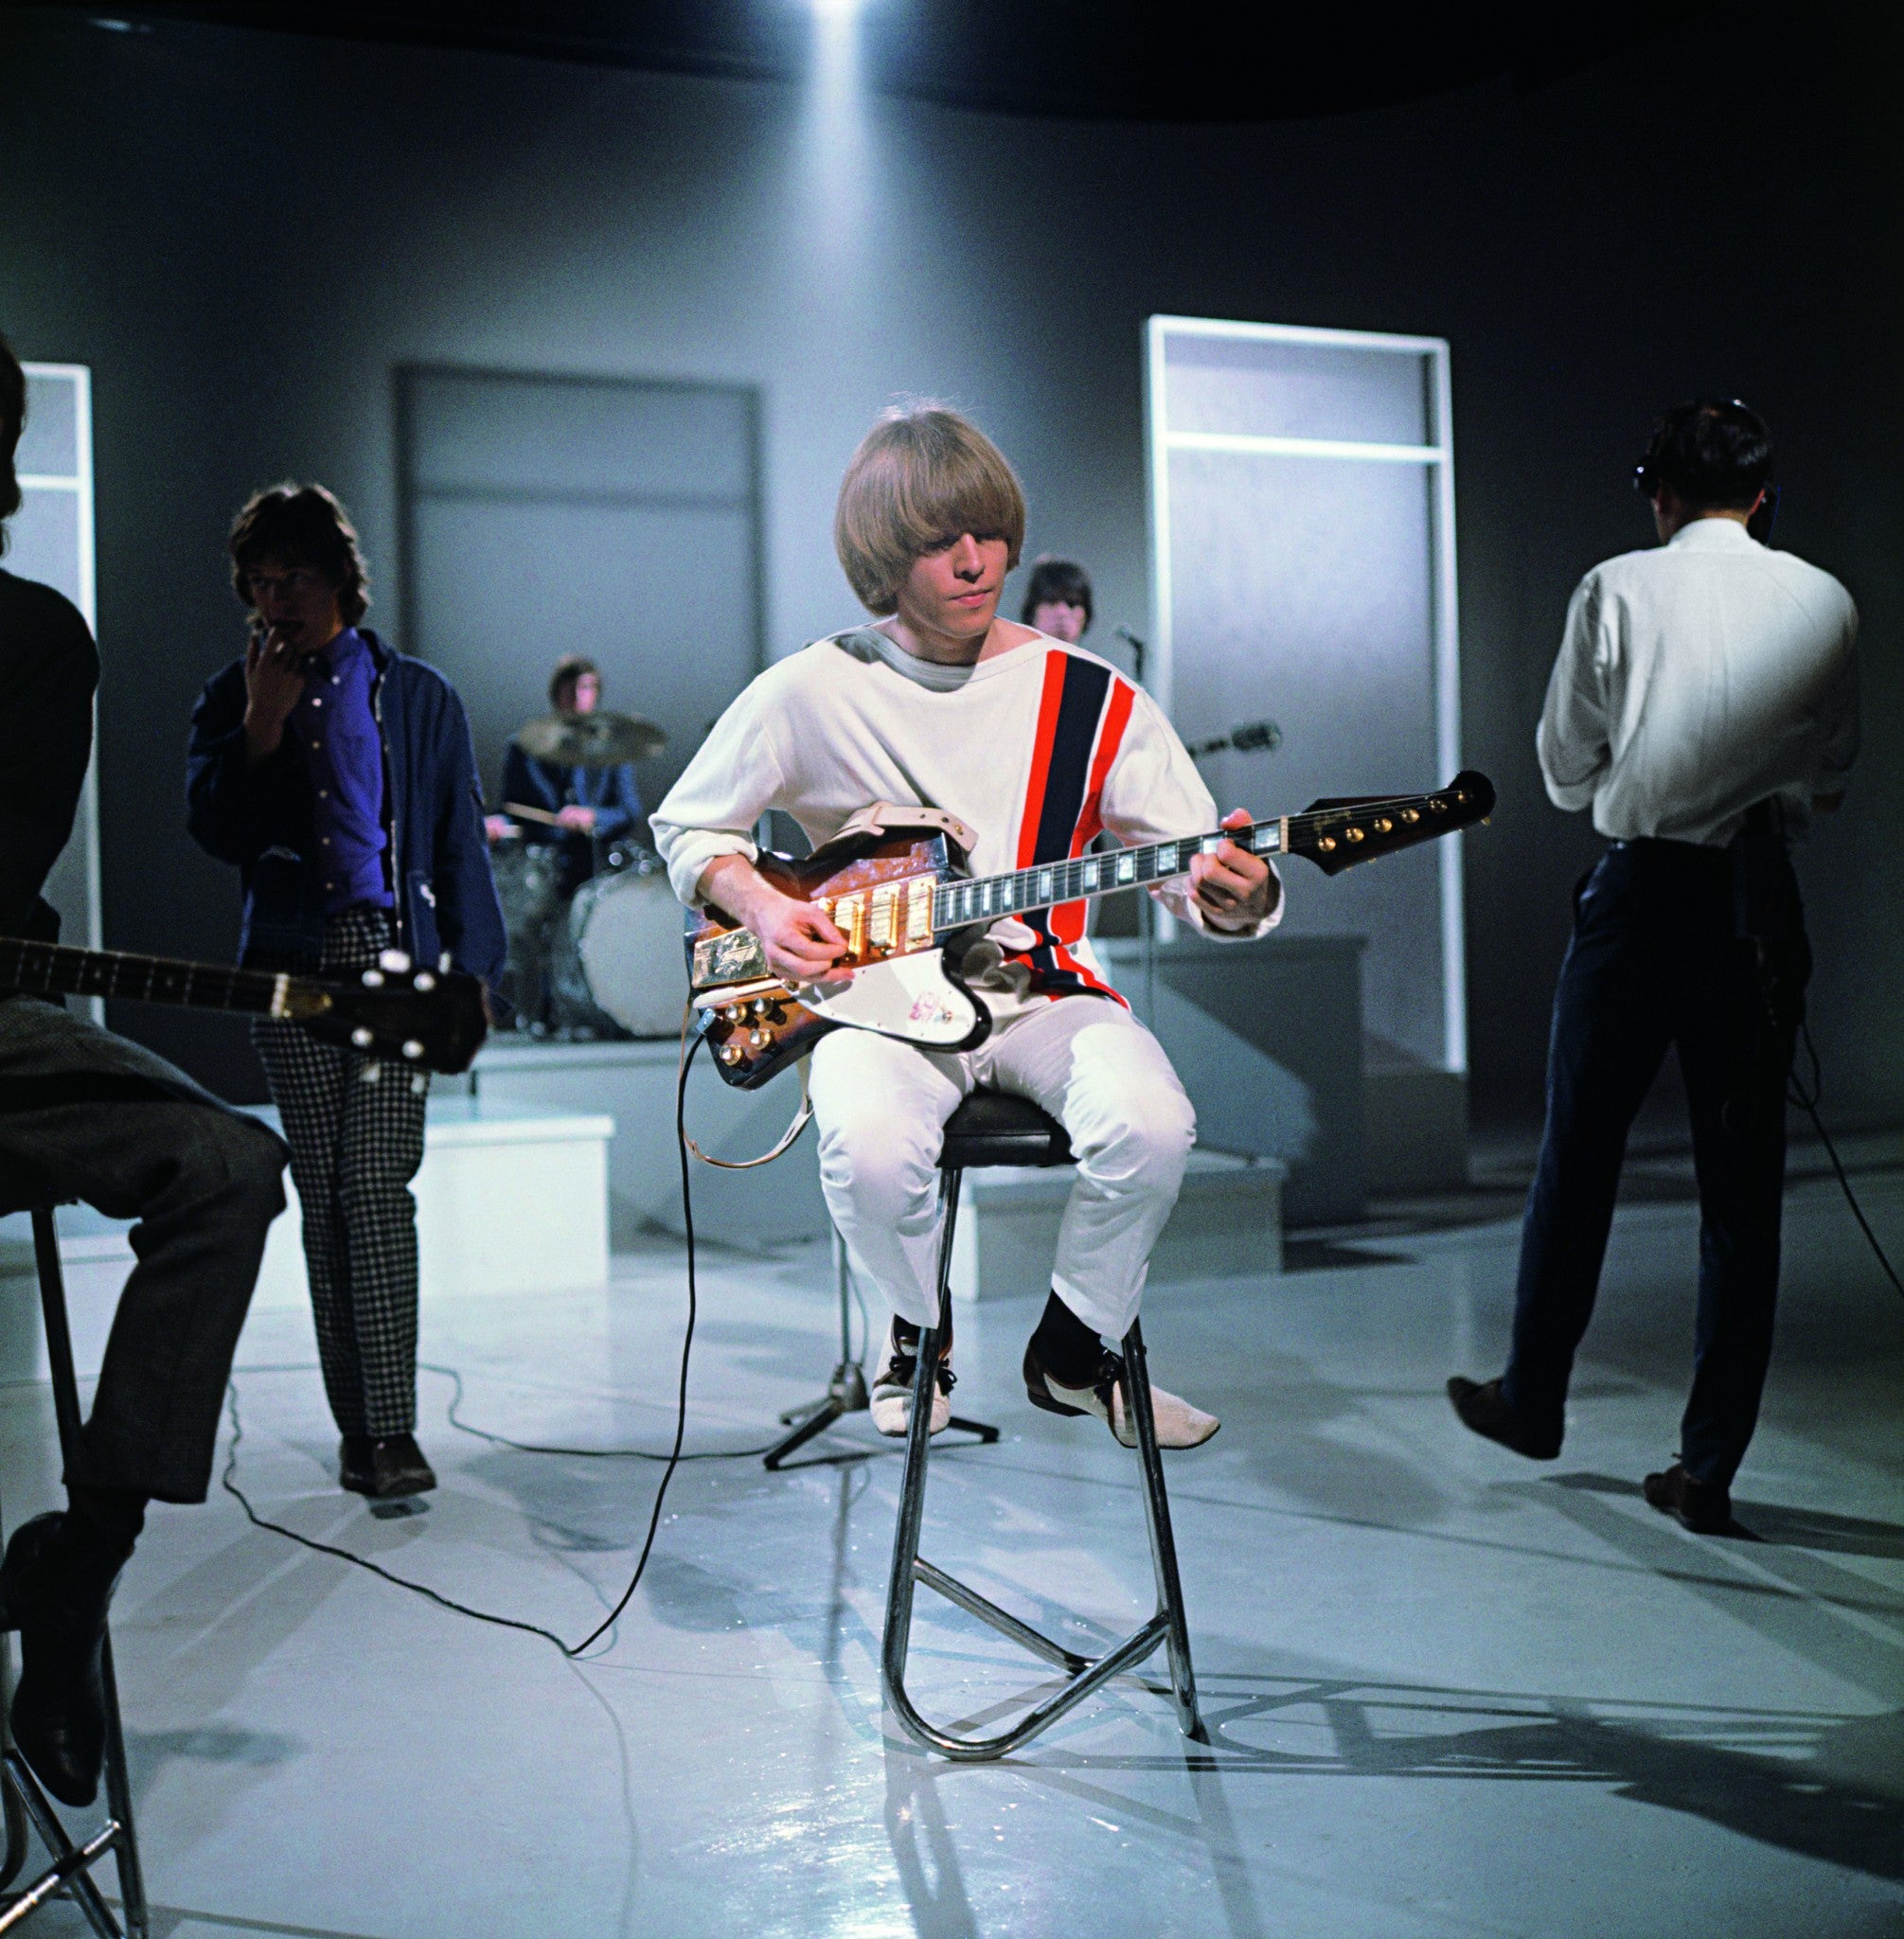 Brian Jones rehearsing for TV show Ready Steady Go to promote the new single 